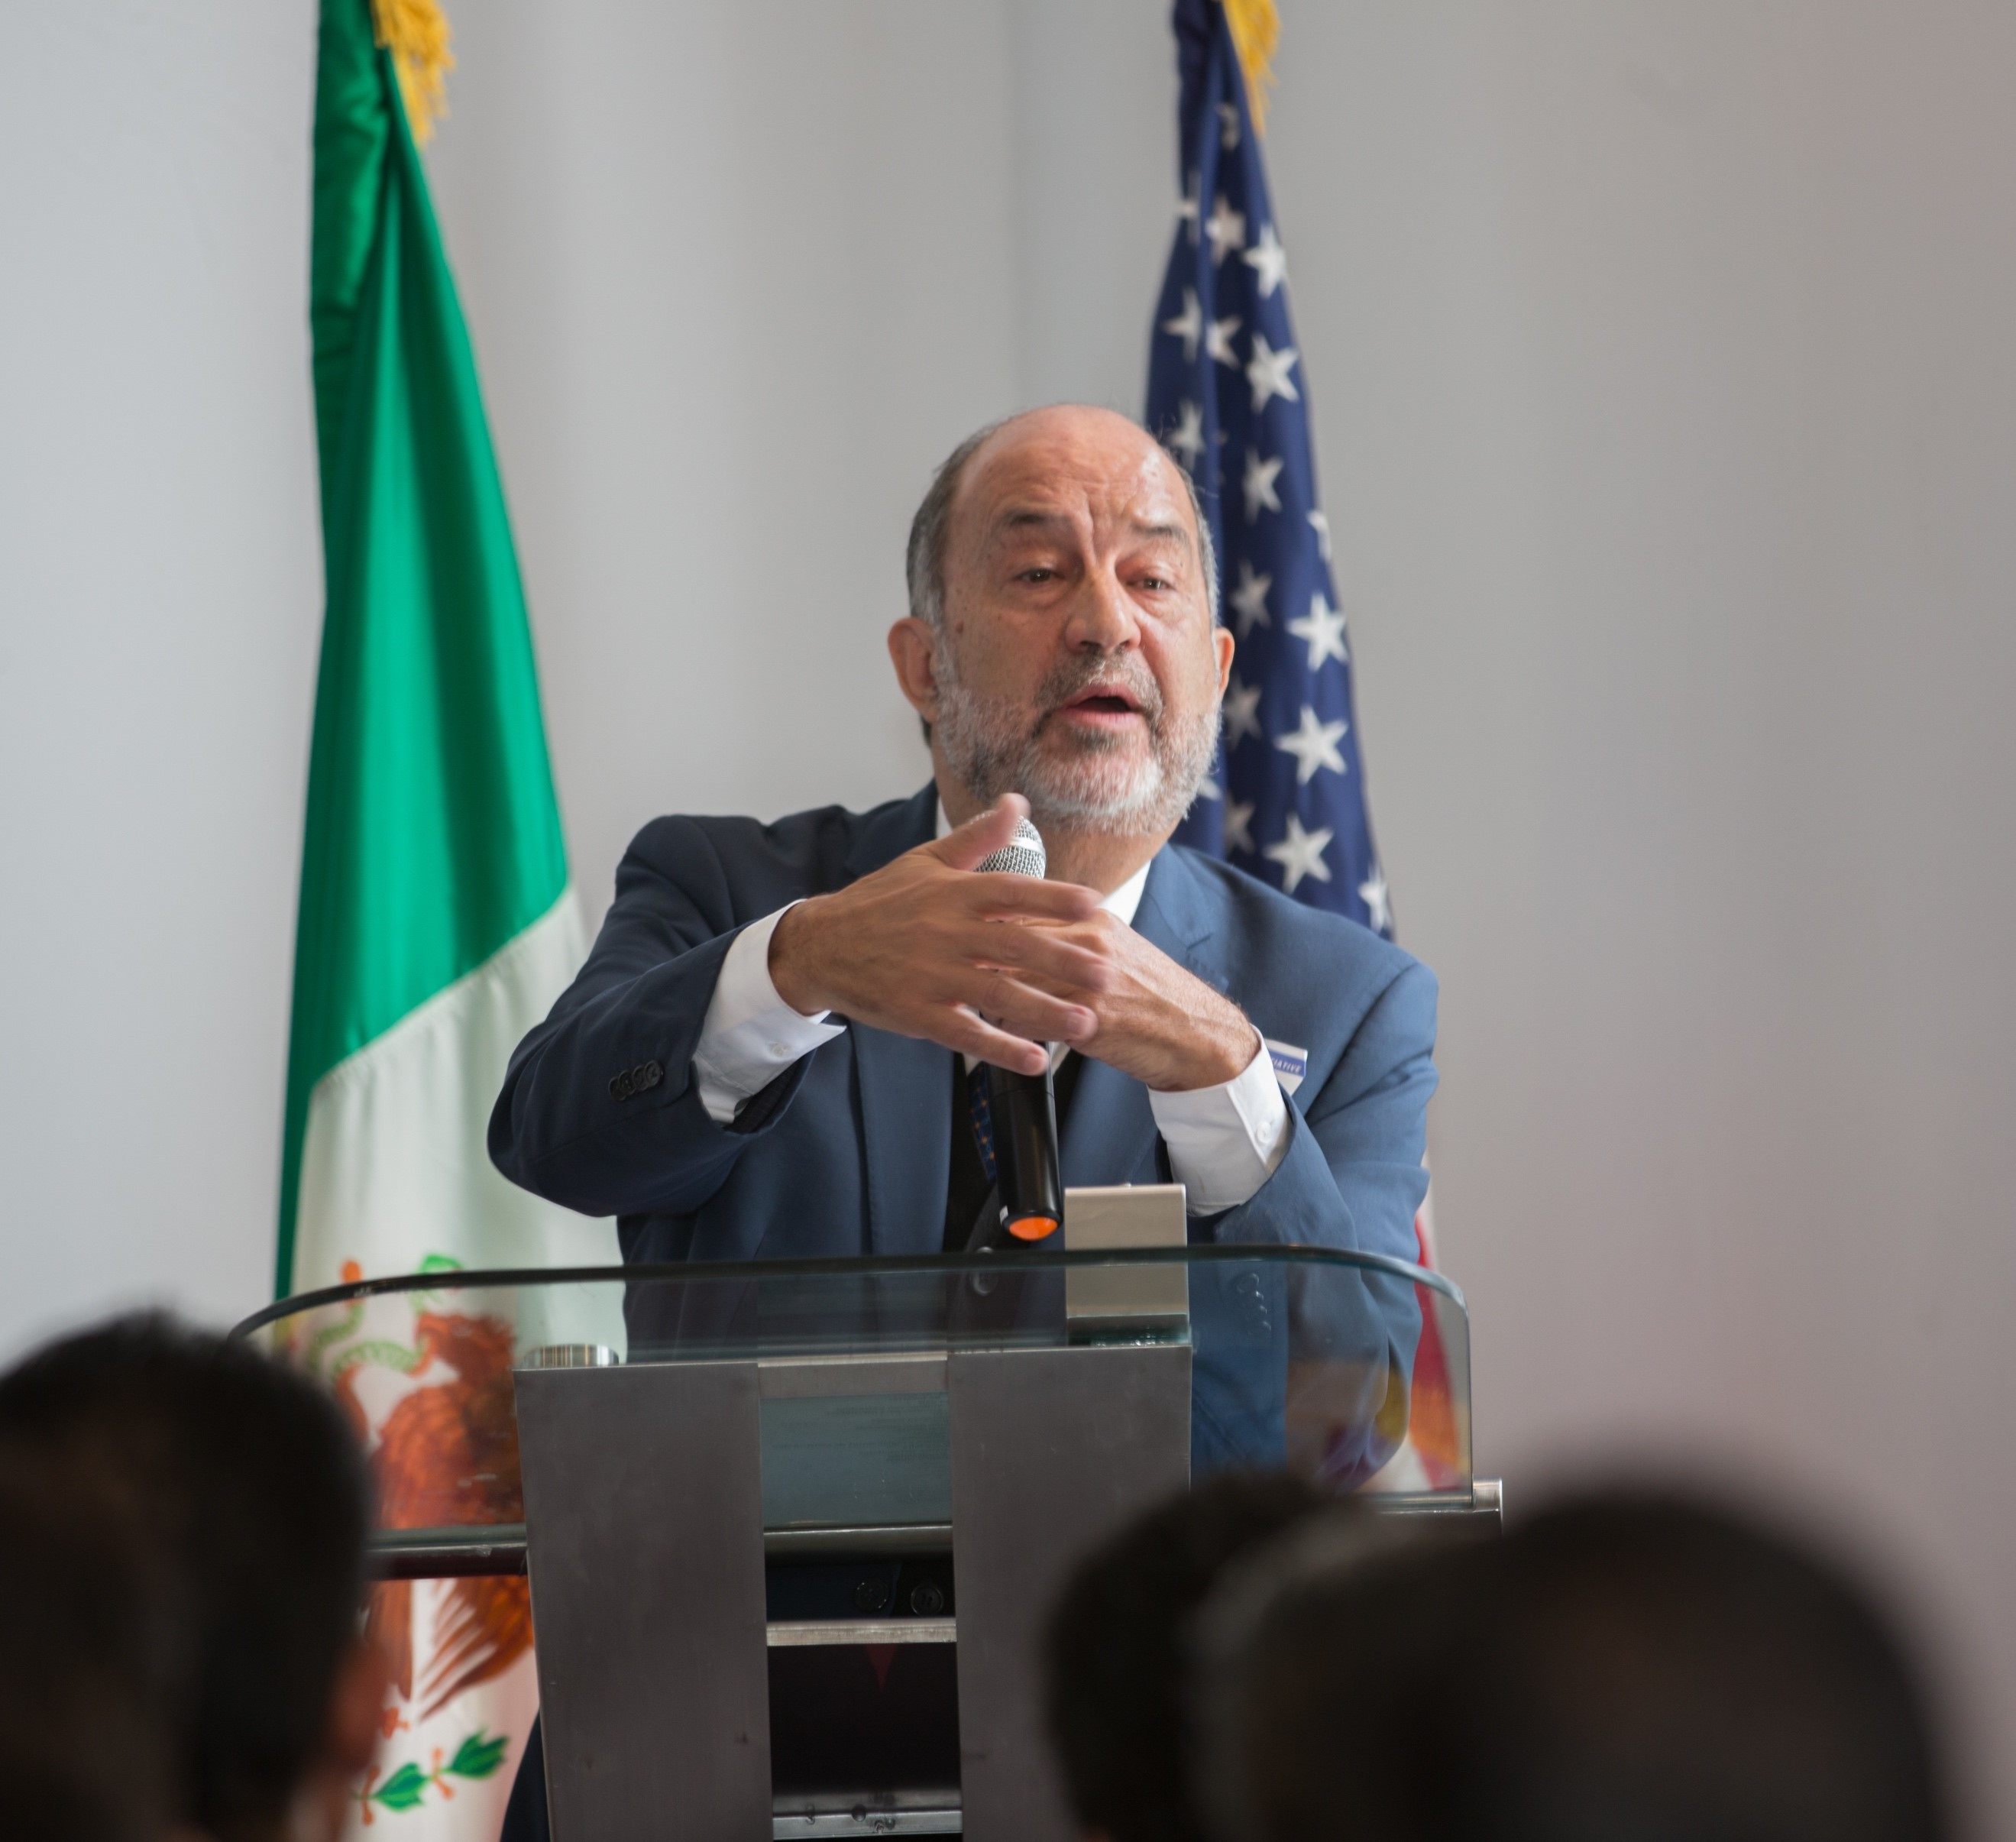 Image of Odon de Buen, Director General, National Commission for the Efficient Use of Energy in Mexico (CONUEE)